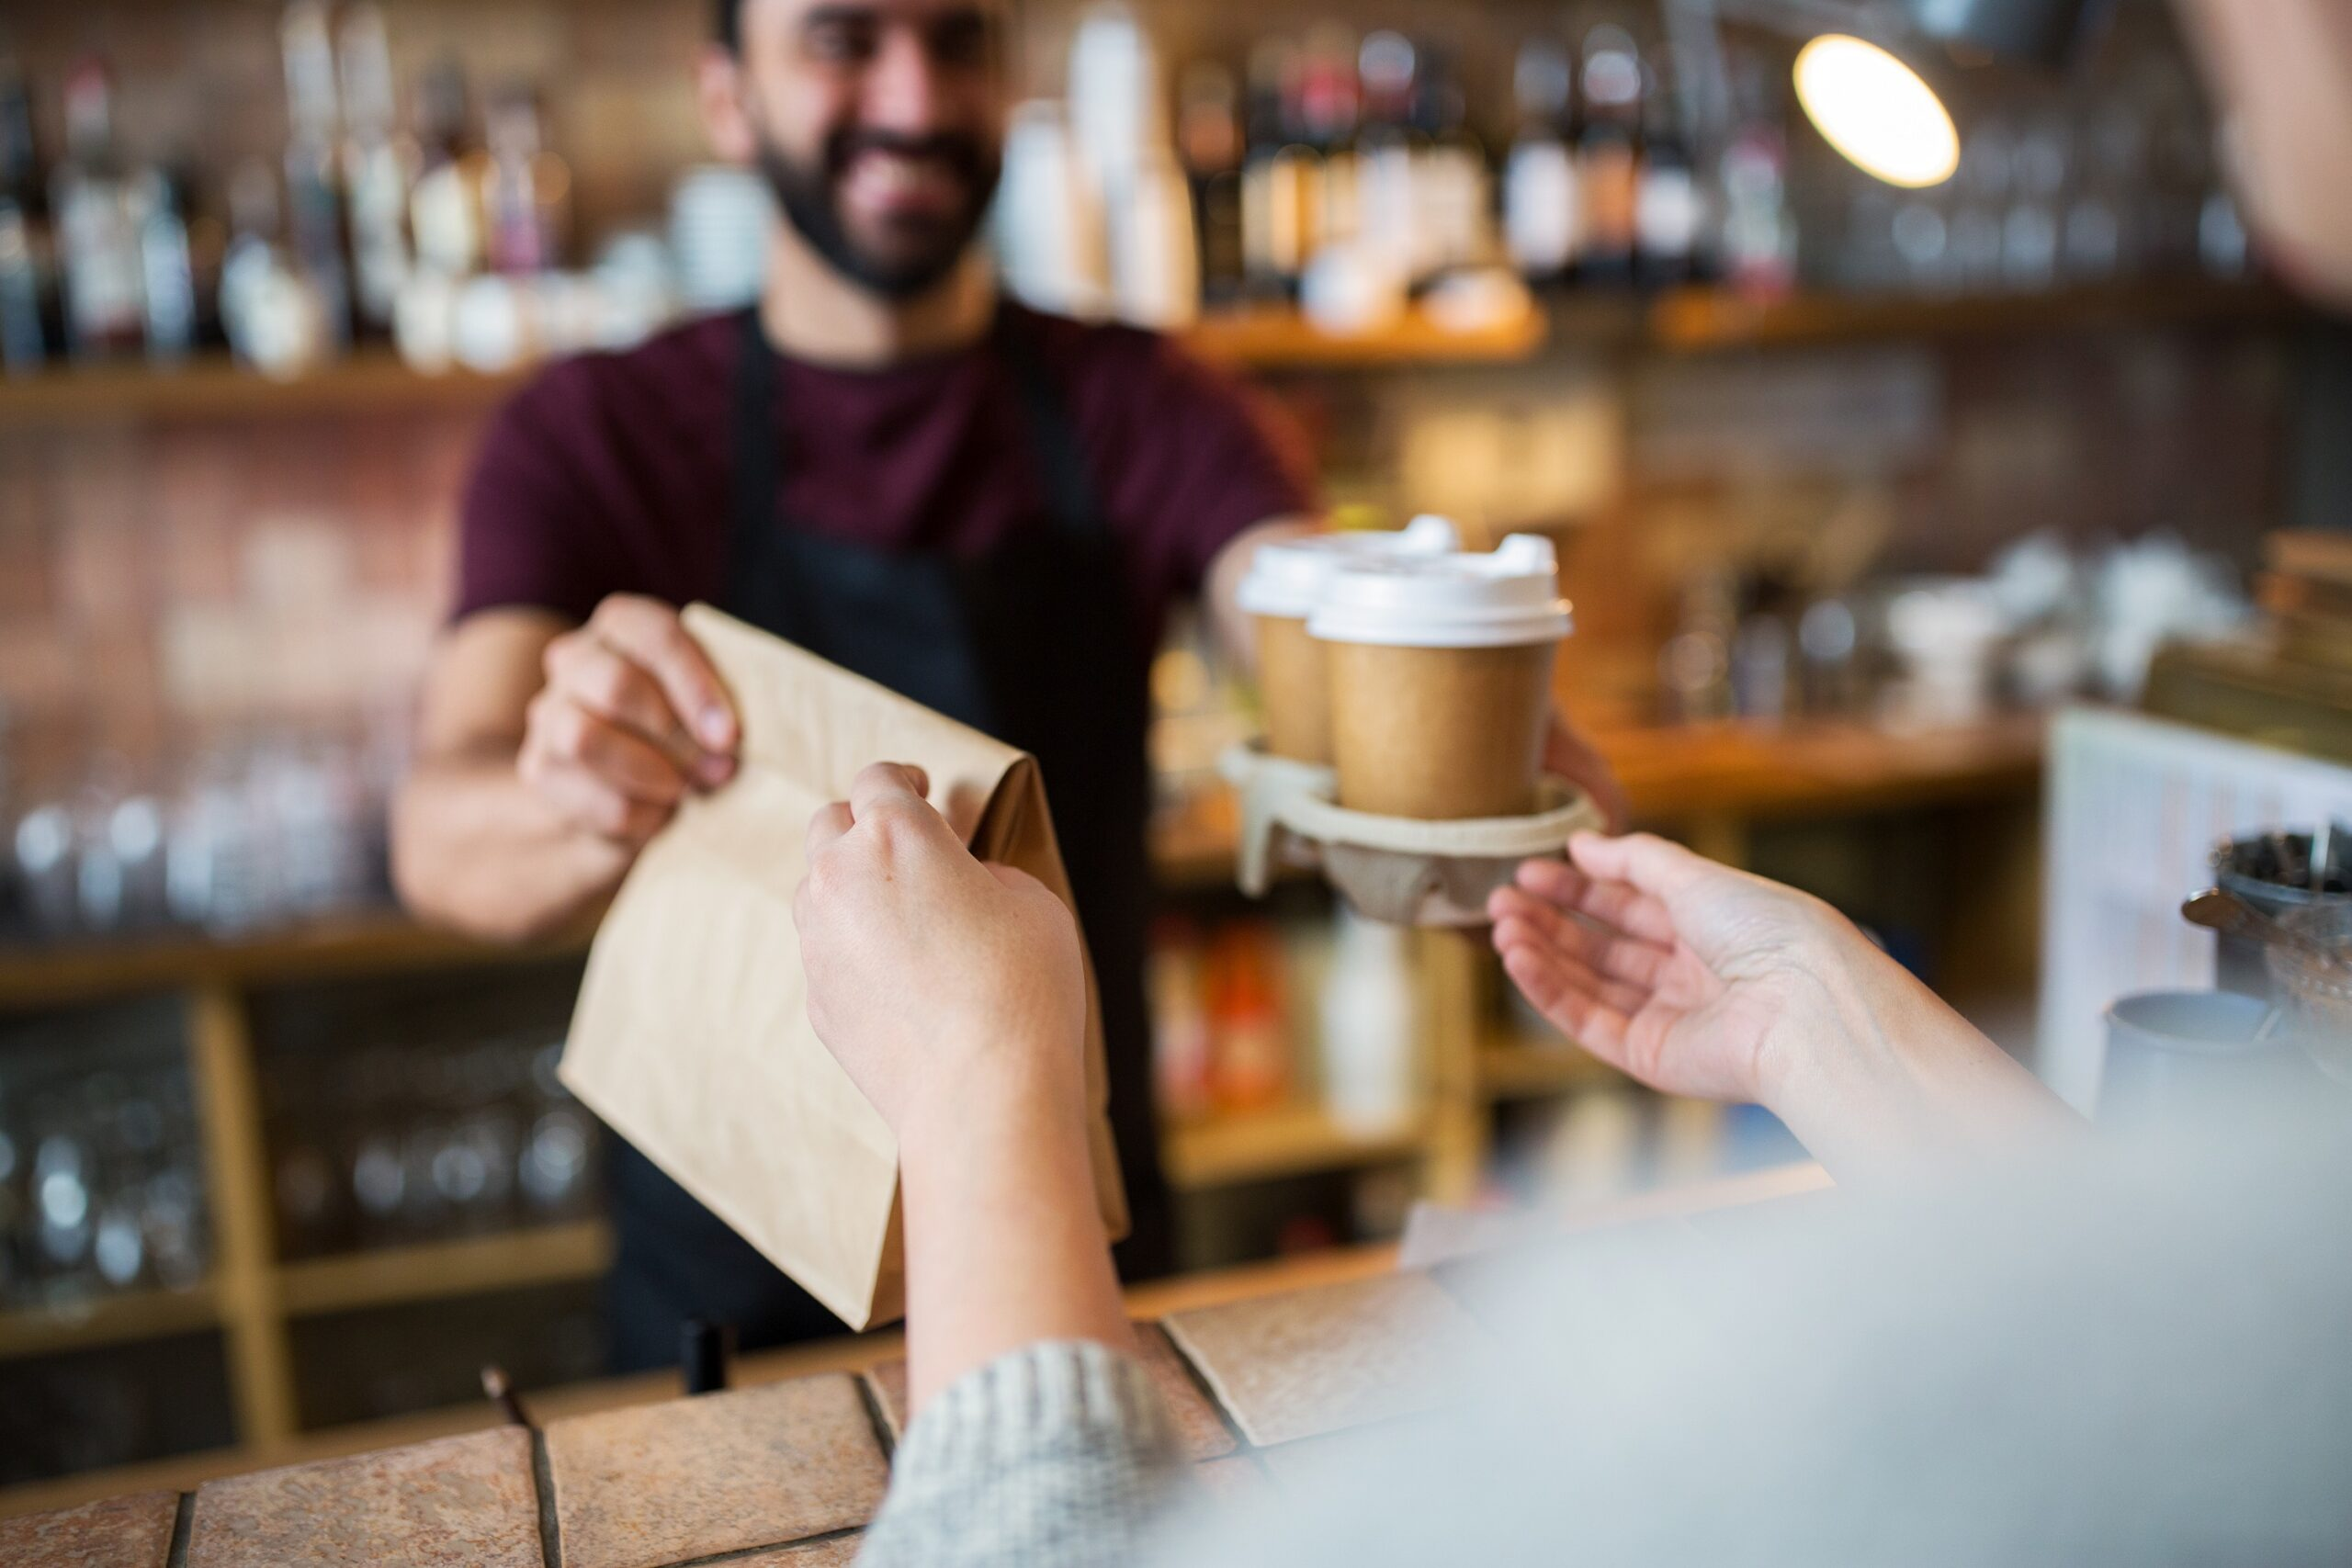 Barista handing over free coffee and cake